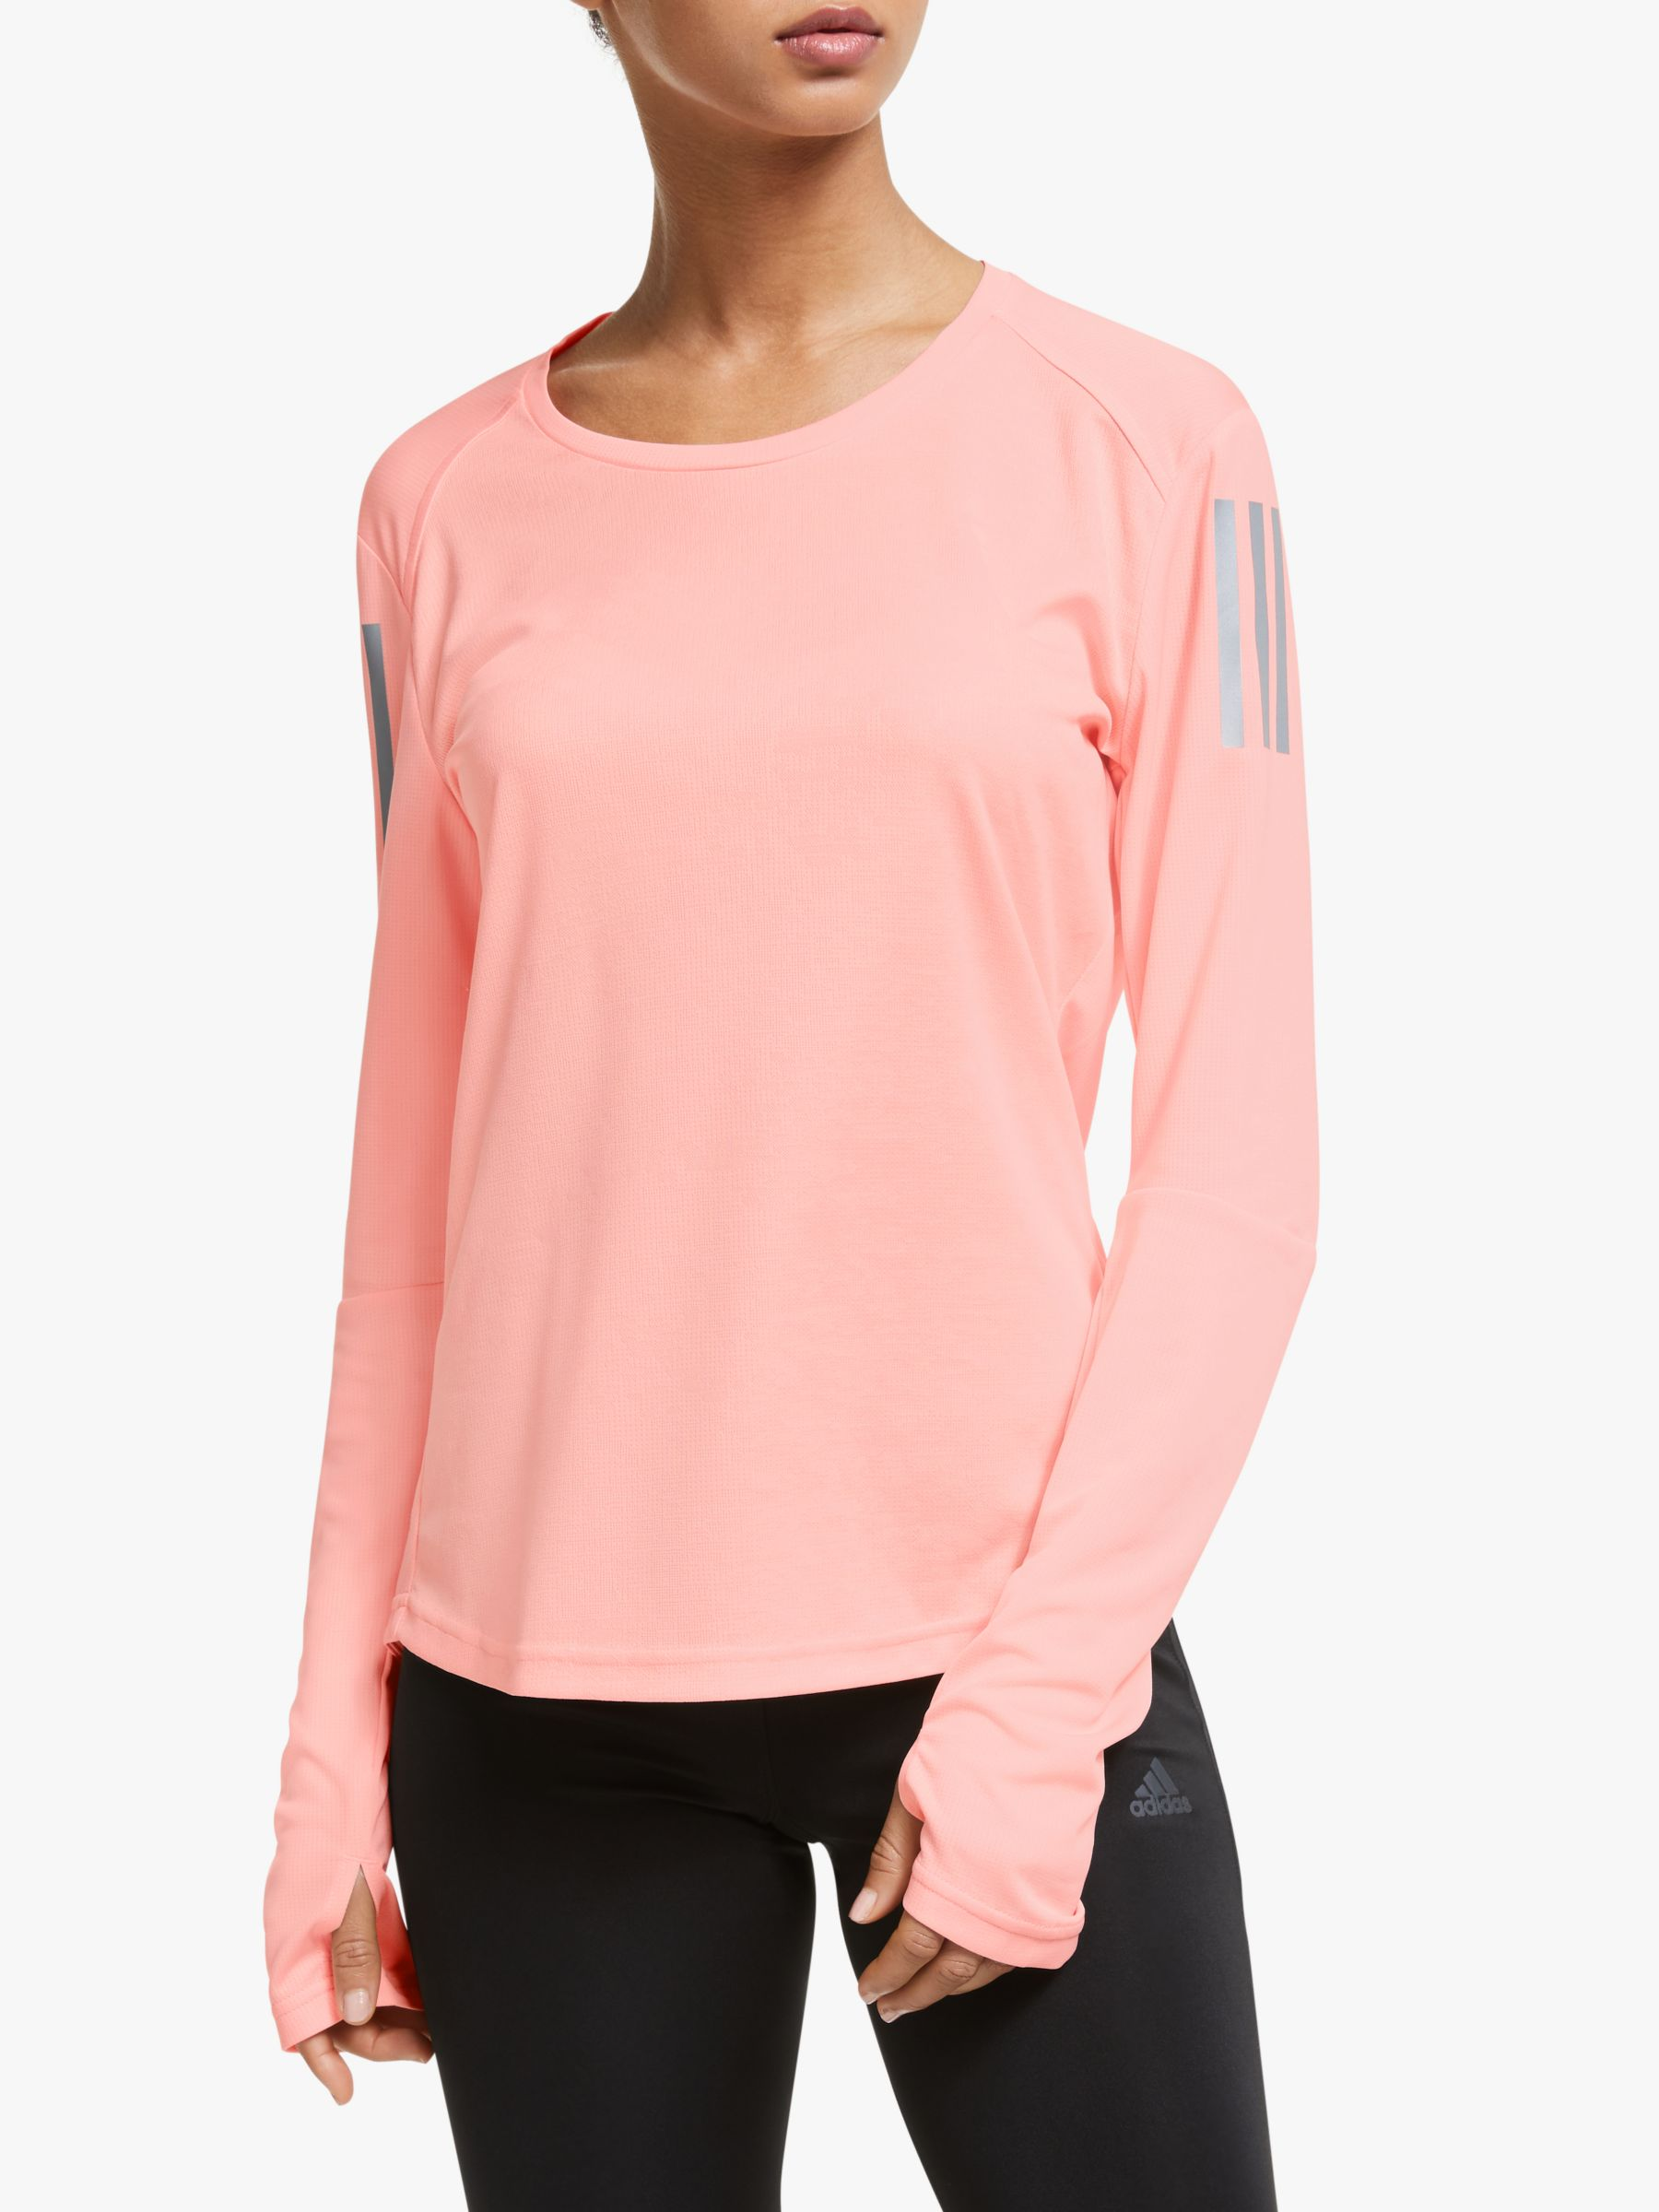 Canberra pronóstico China  adidas Own The Run Long Sleeve Running Top, Glow Pink at John Lewis &  Partners